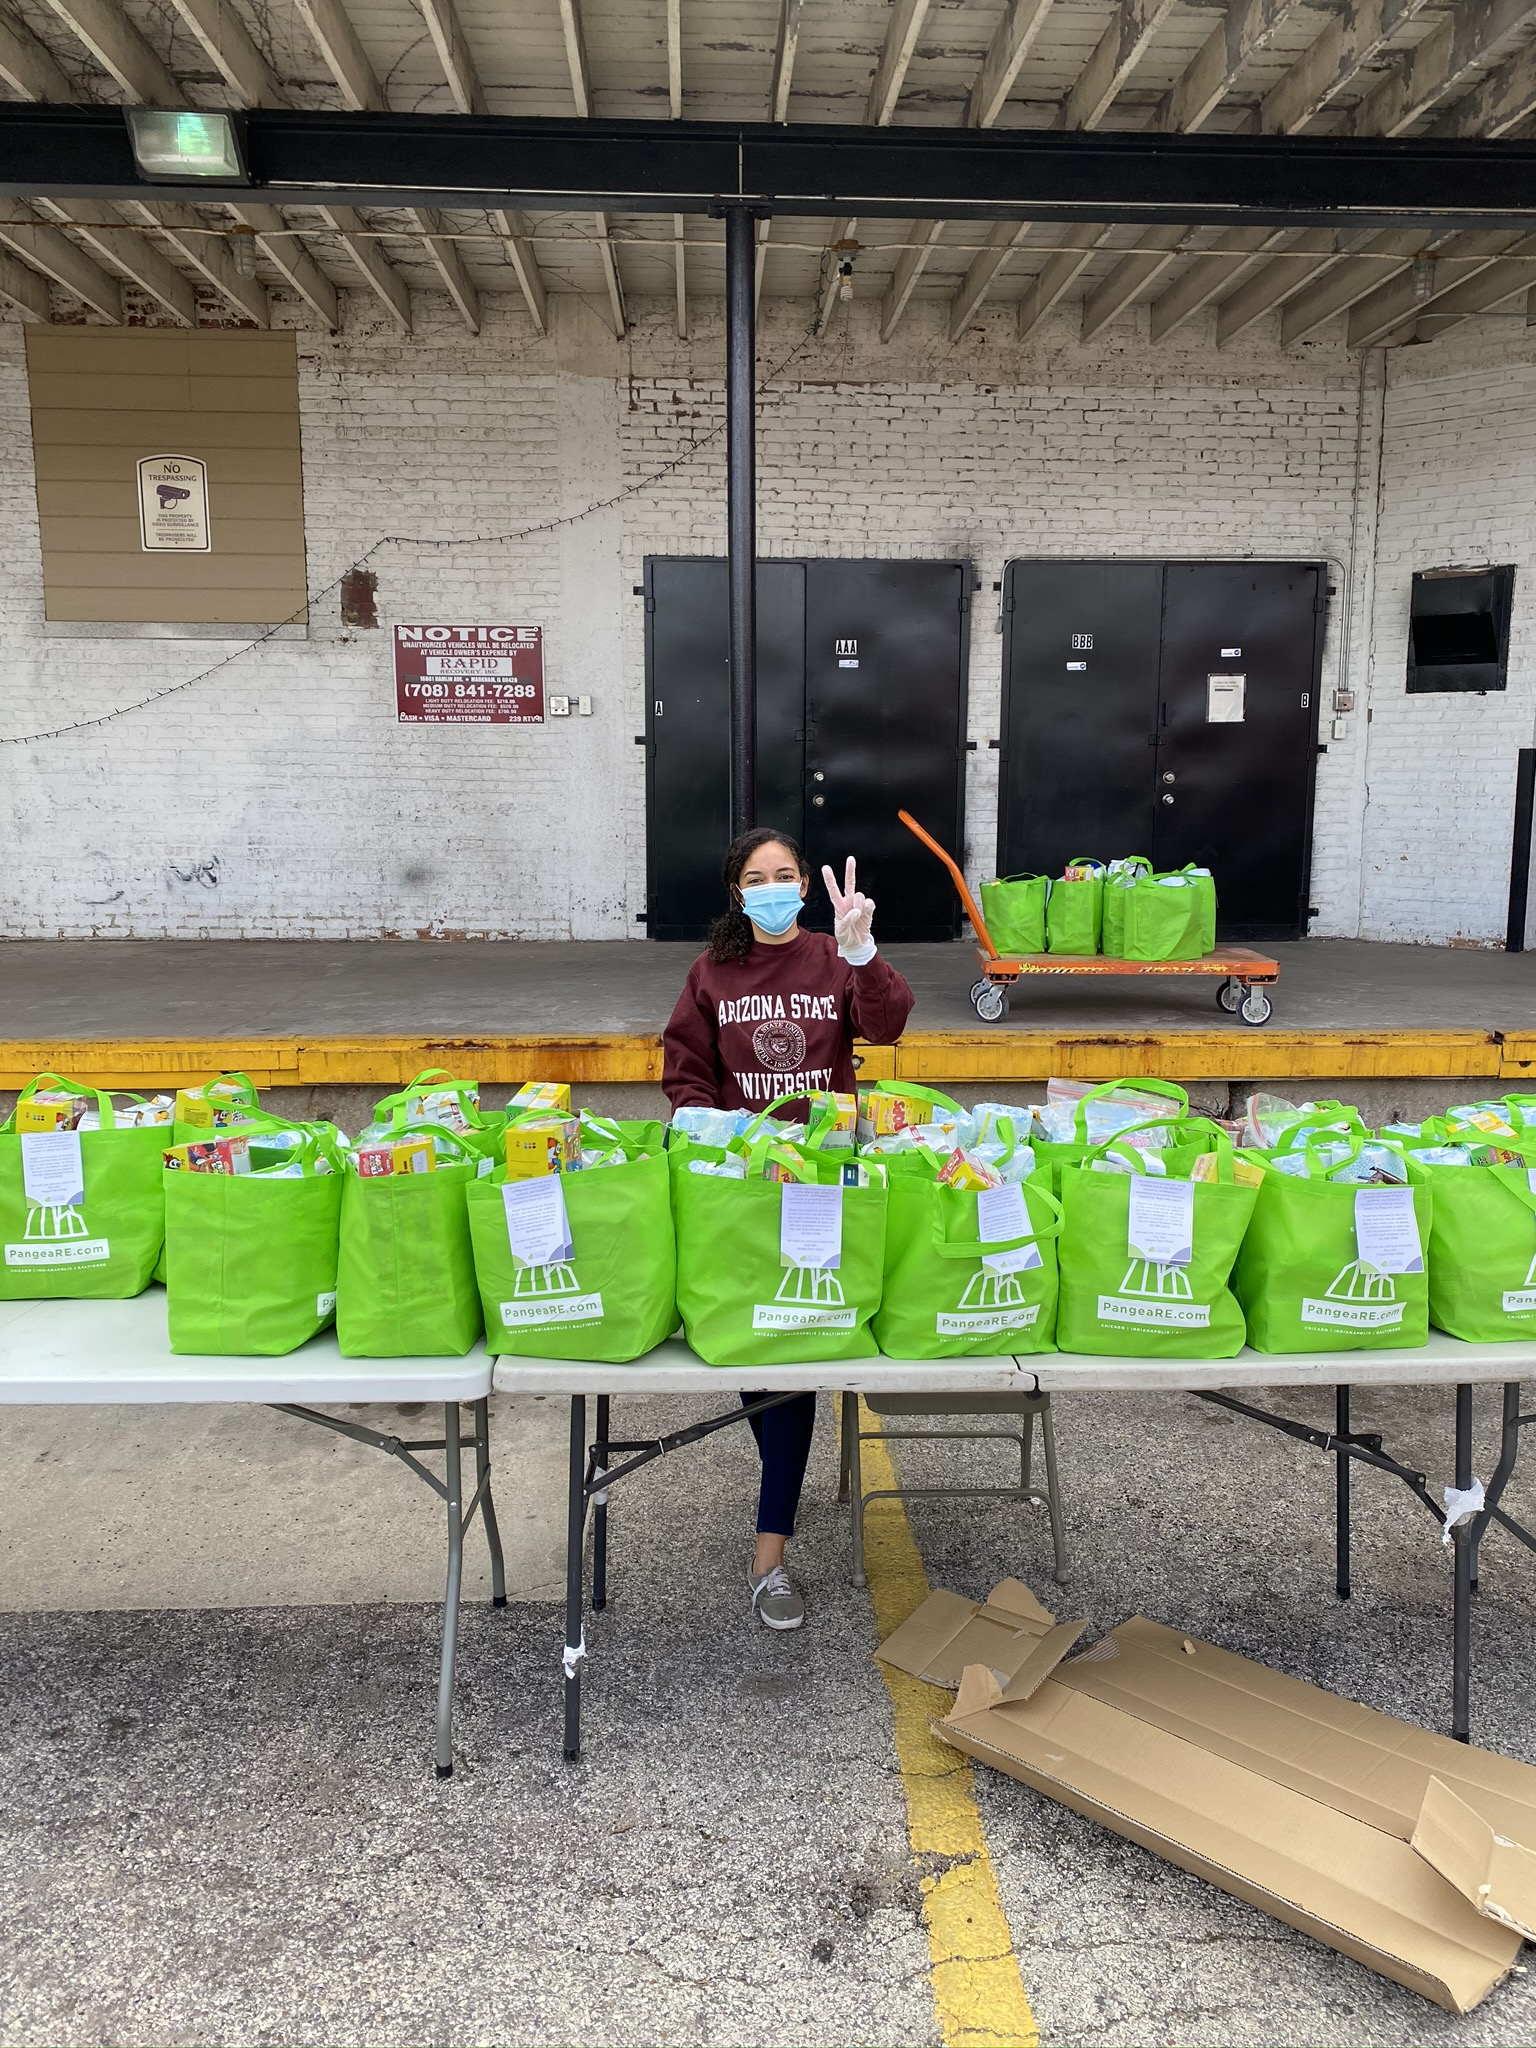 Pangea Cares Program Director, Chanelle Cromwell standing behind care packages waiting to be delivered